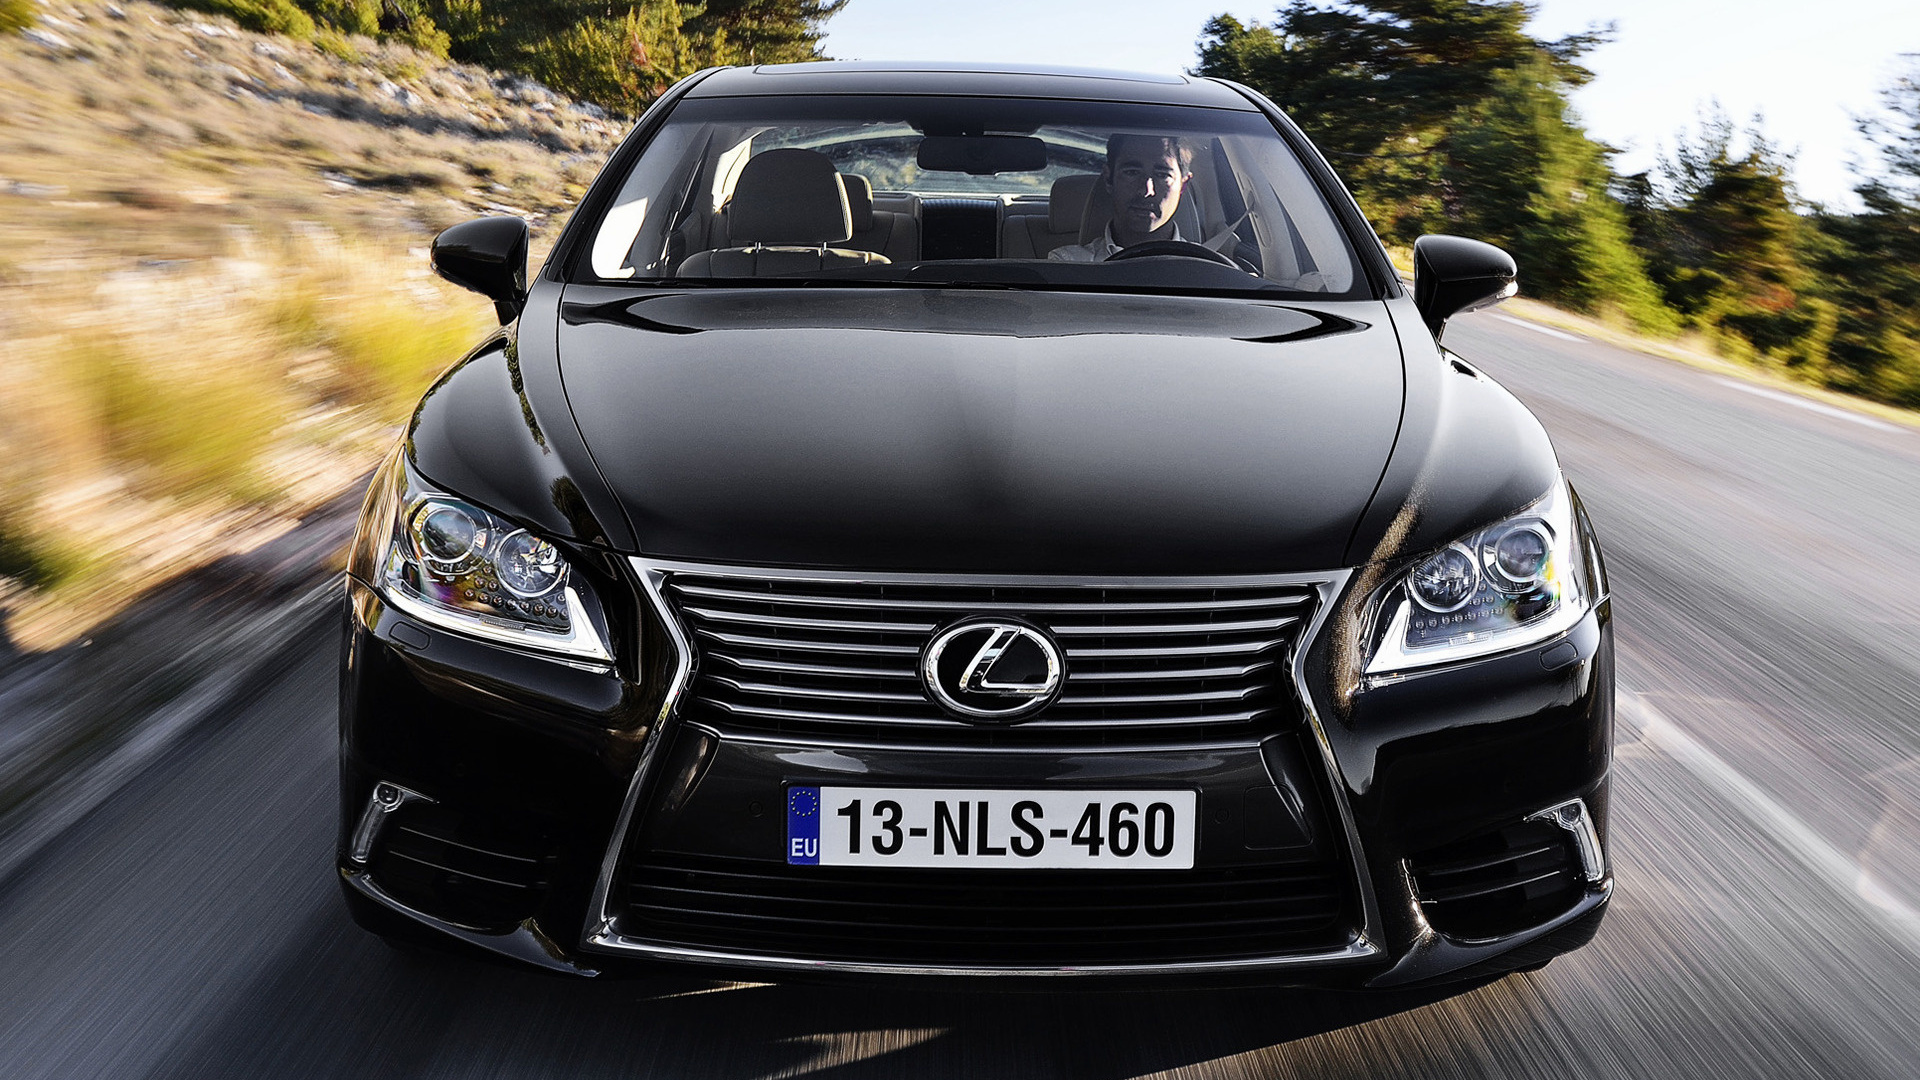 Lexus LS [LWB] (2012) Wallpapers and HD Images - Car Pixel